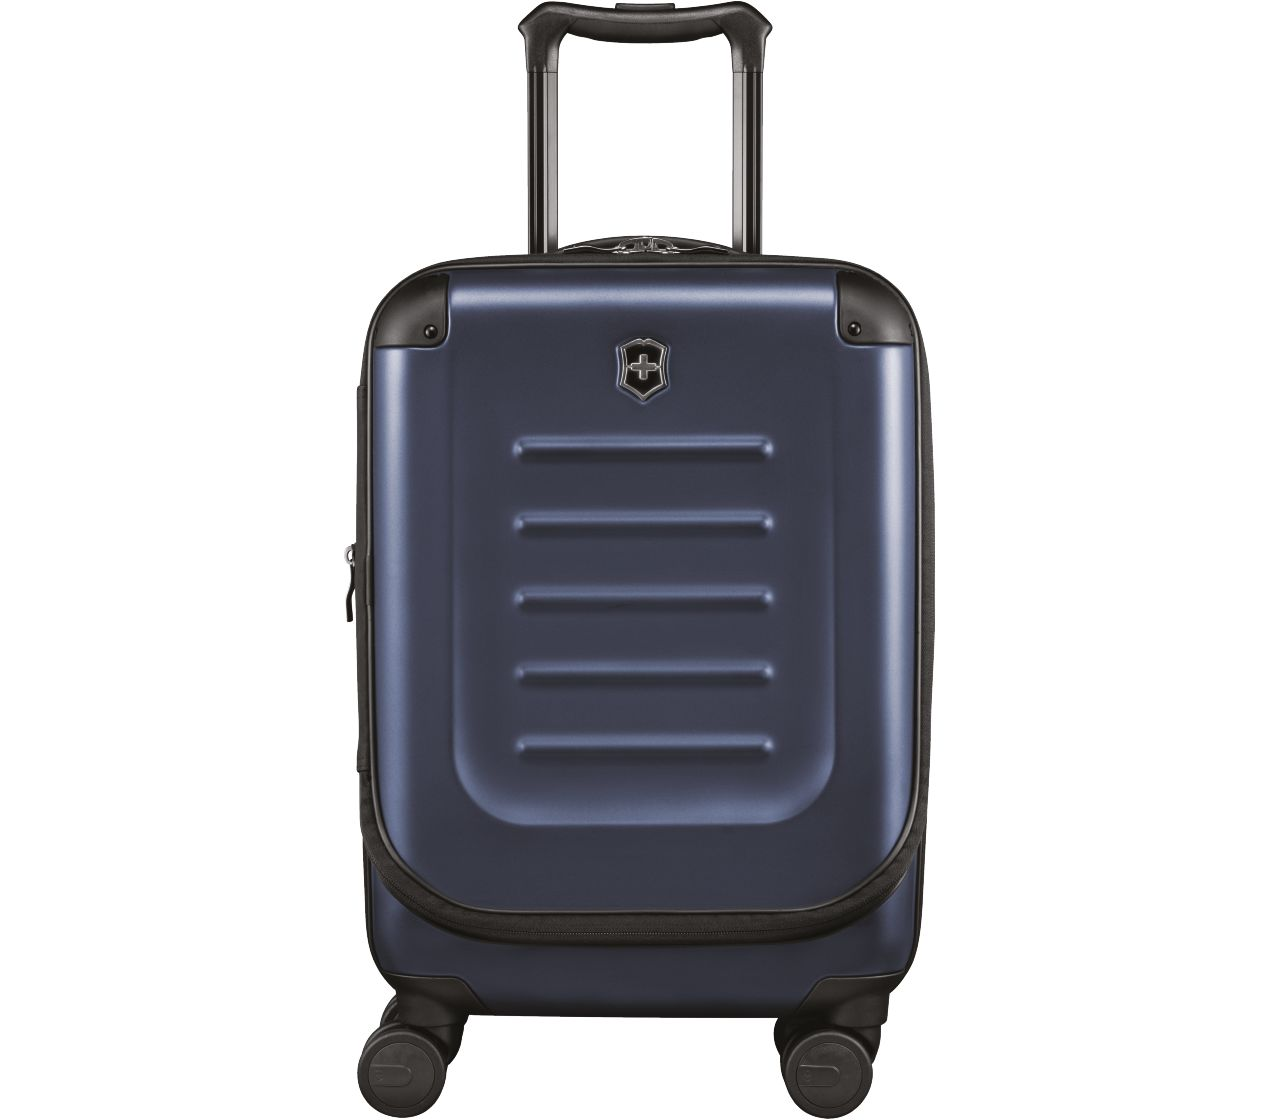 Spectra 2.0 Expandable Compact Global Carry-On-601285